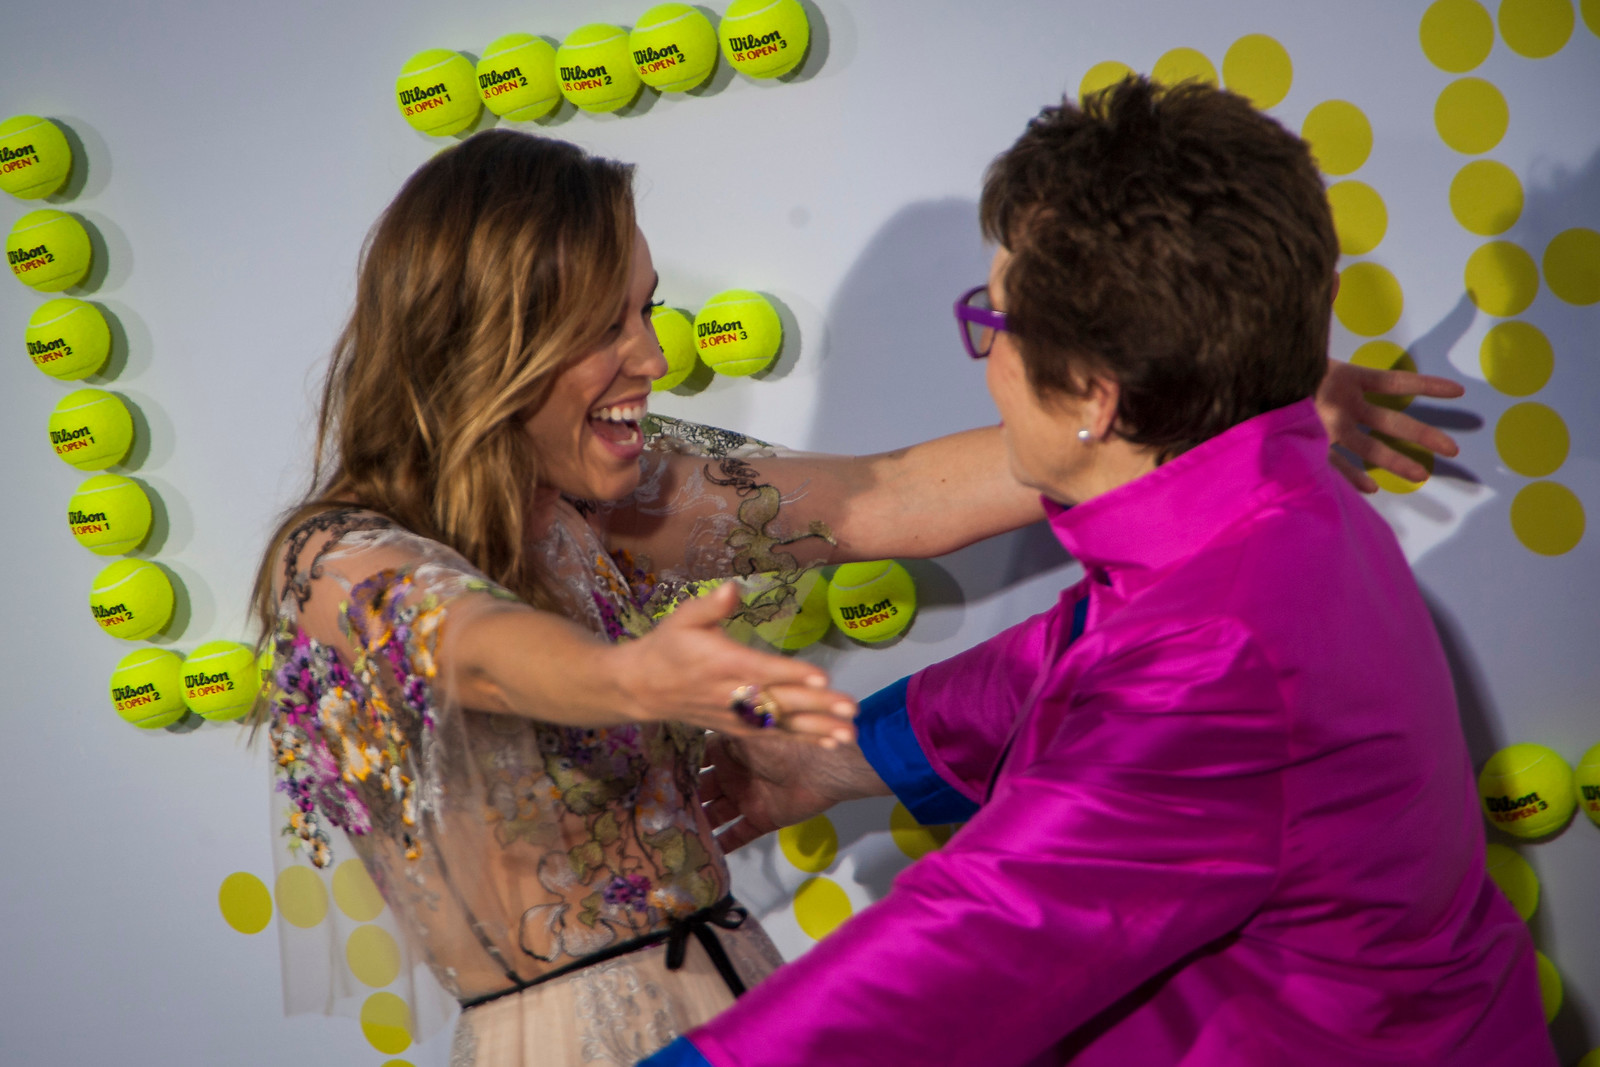 WESTWOOD, CA - SEPTEMBER 16: Actress Jessica McNamee anf tennis legend Billie Jean King the premiere of Fox Searchlight Pictures' 'Battle Of The Sexes' at Regency Village Theatre on Saturday, September 16, 2017 in Westwood, California. (Photo by Tom Sorensen/Moovieboy Pictures)